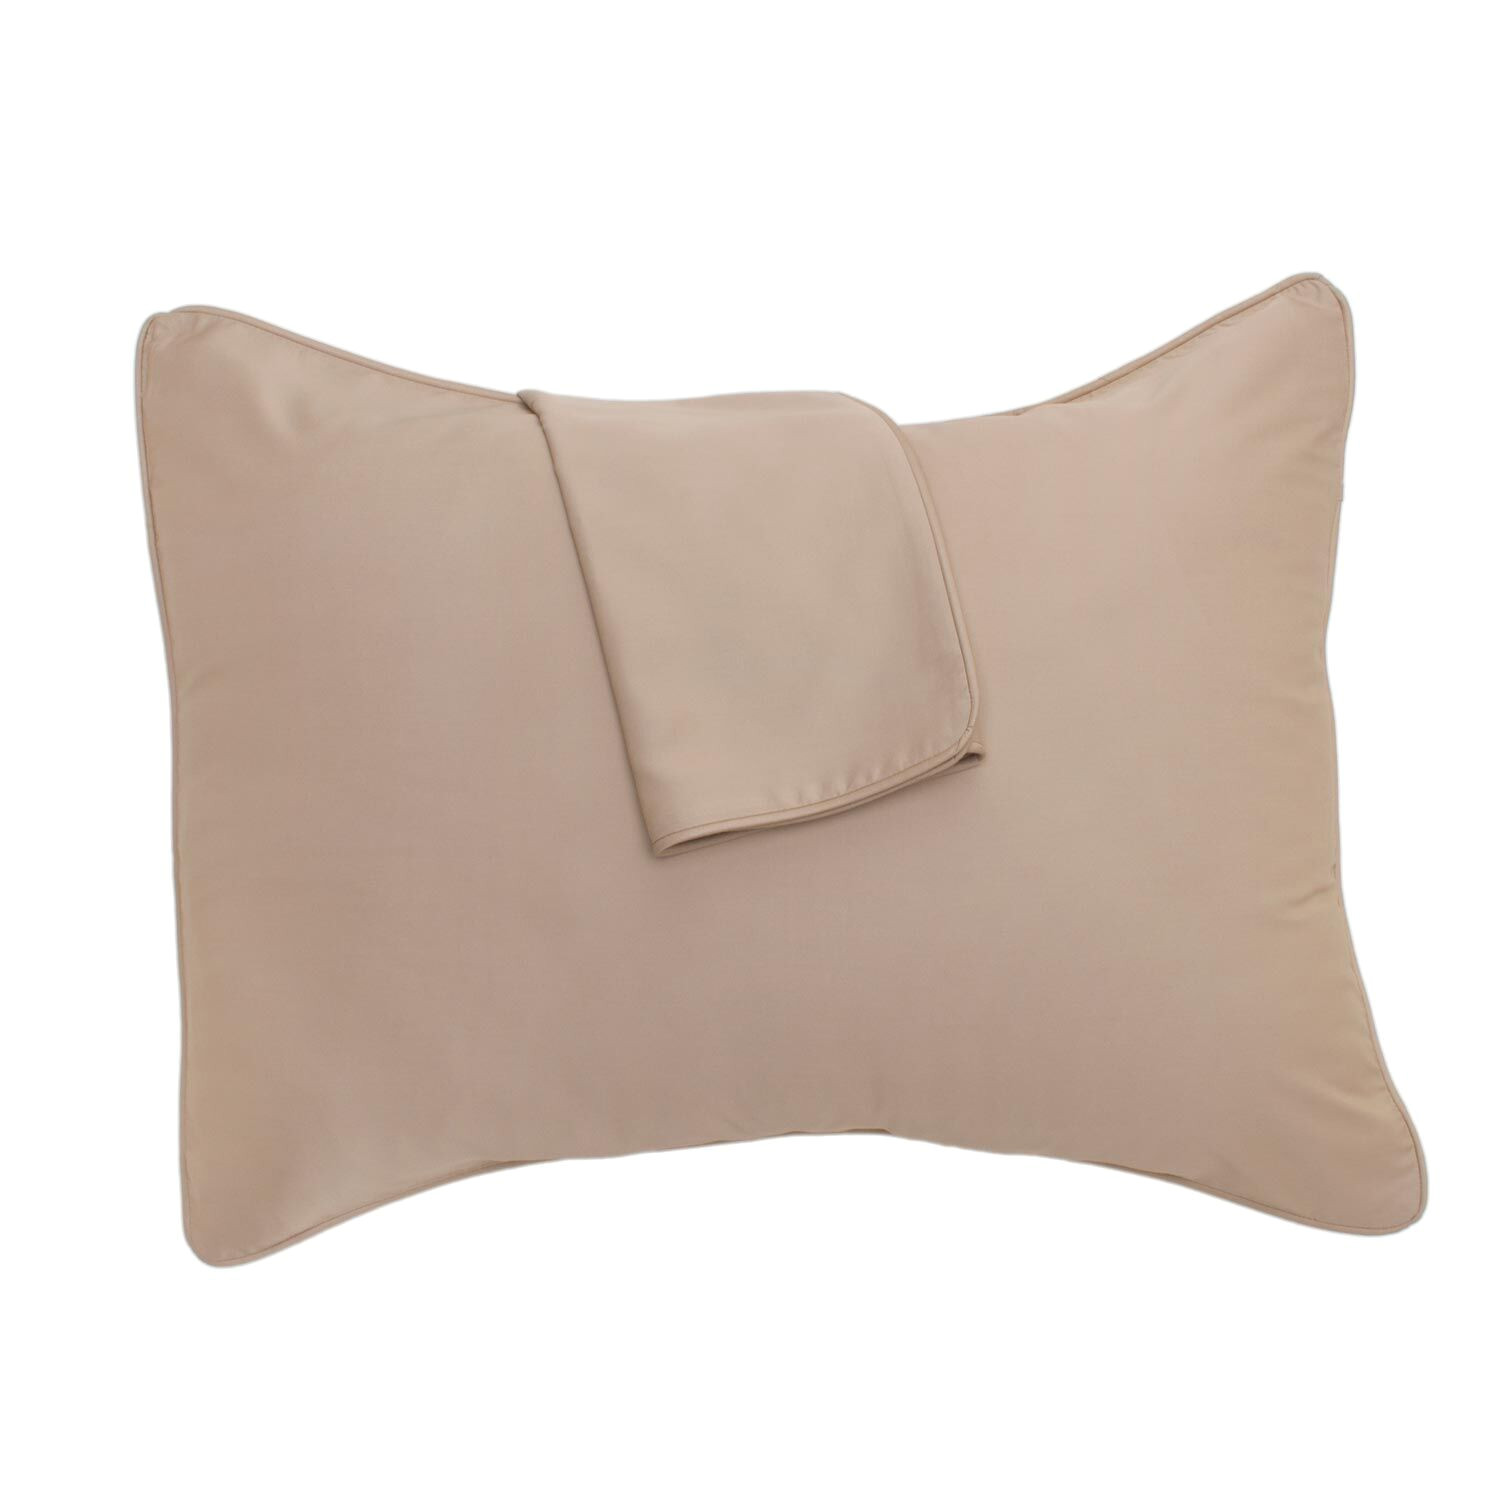 100 bamboo pillow sham set 2 standard for pure luxury in your bedroom bedvoyage s standard shams are the perfect finishing touch as a wonderful accessory